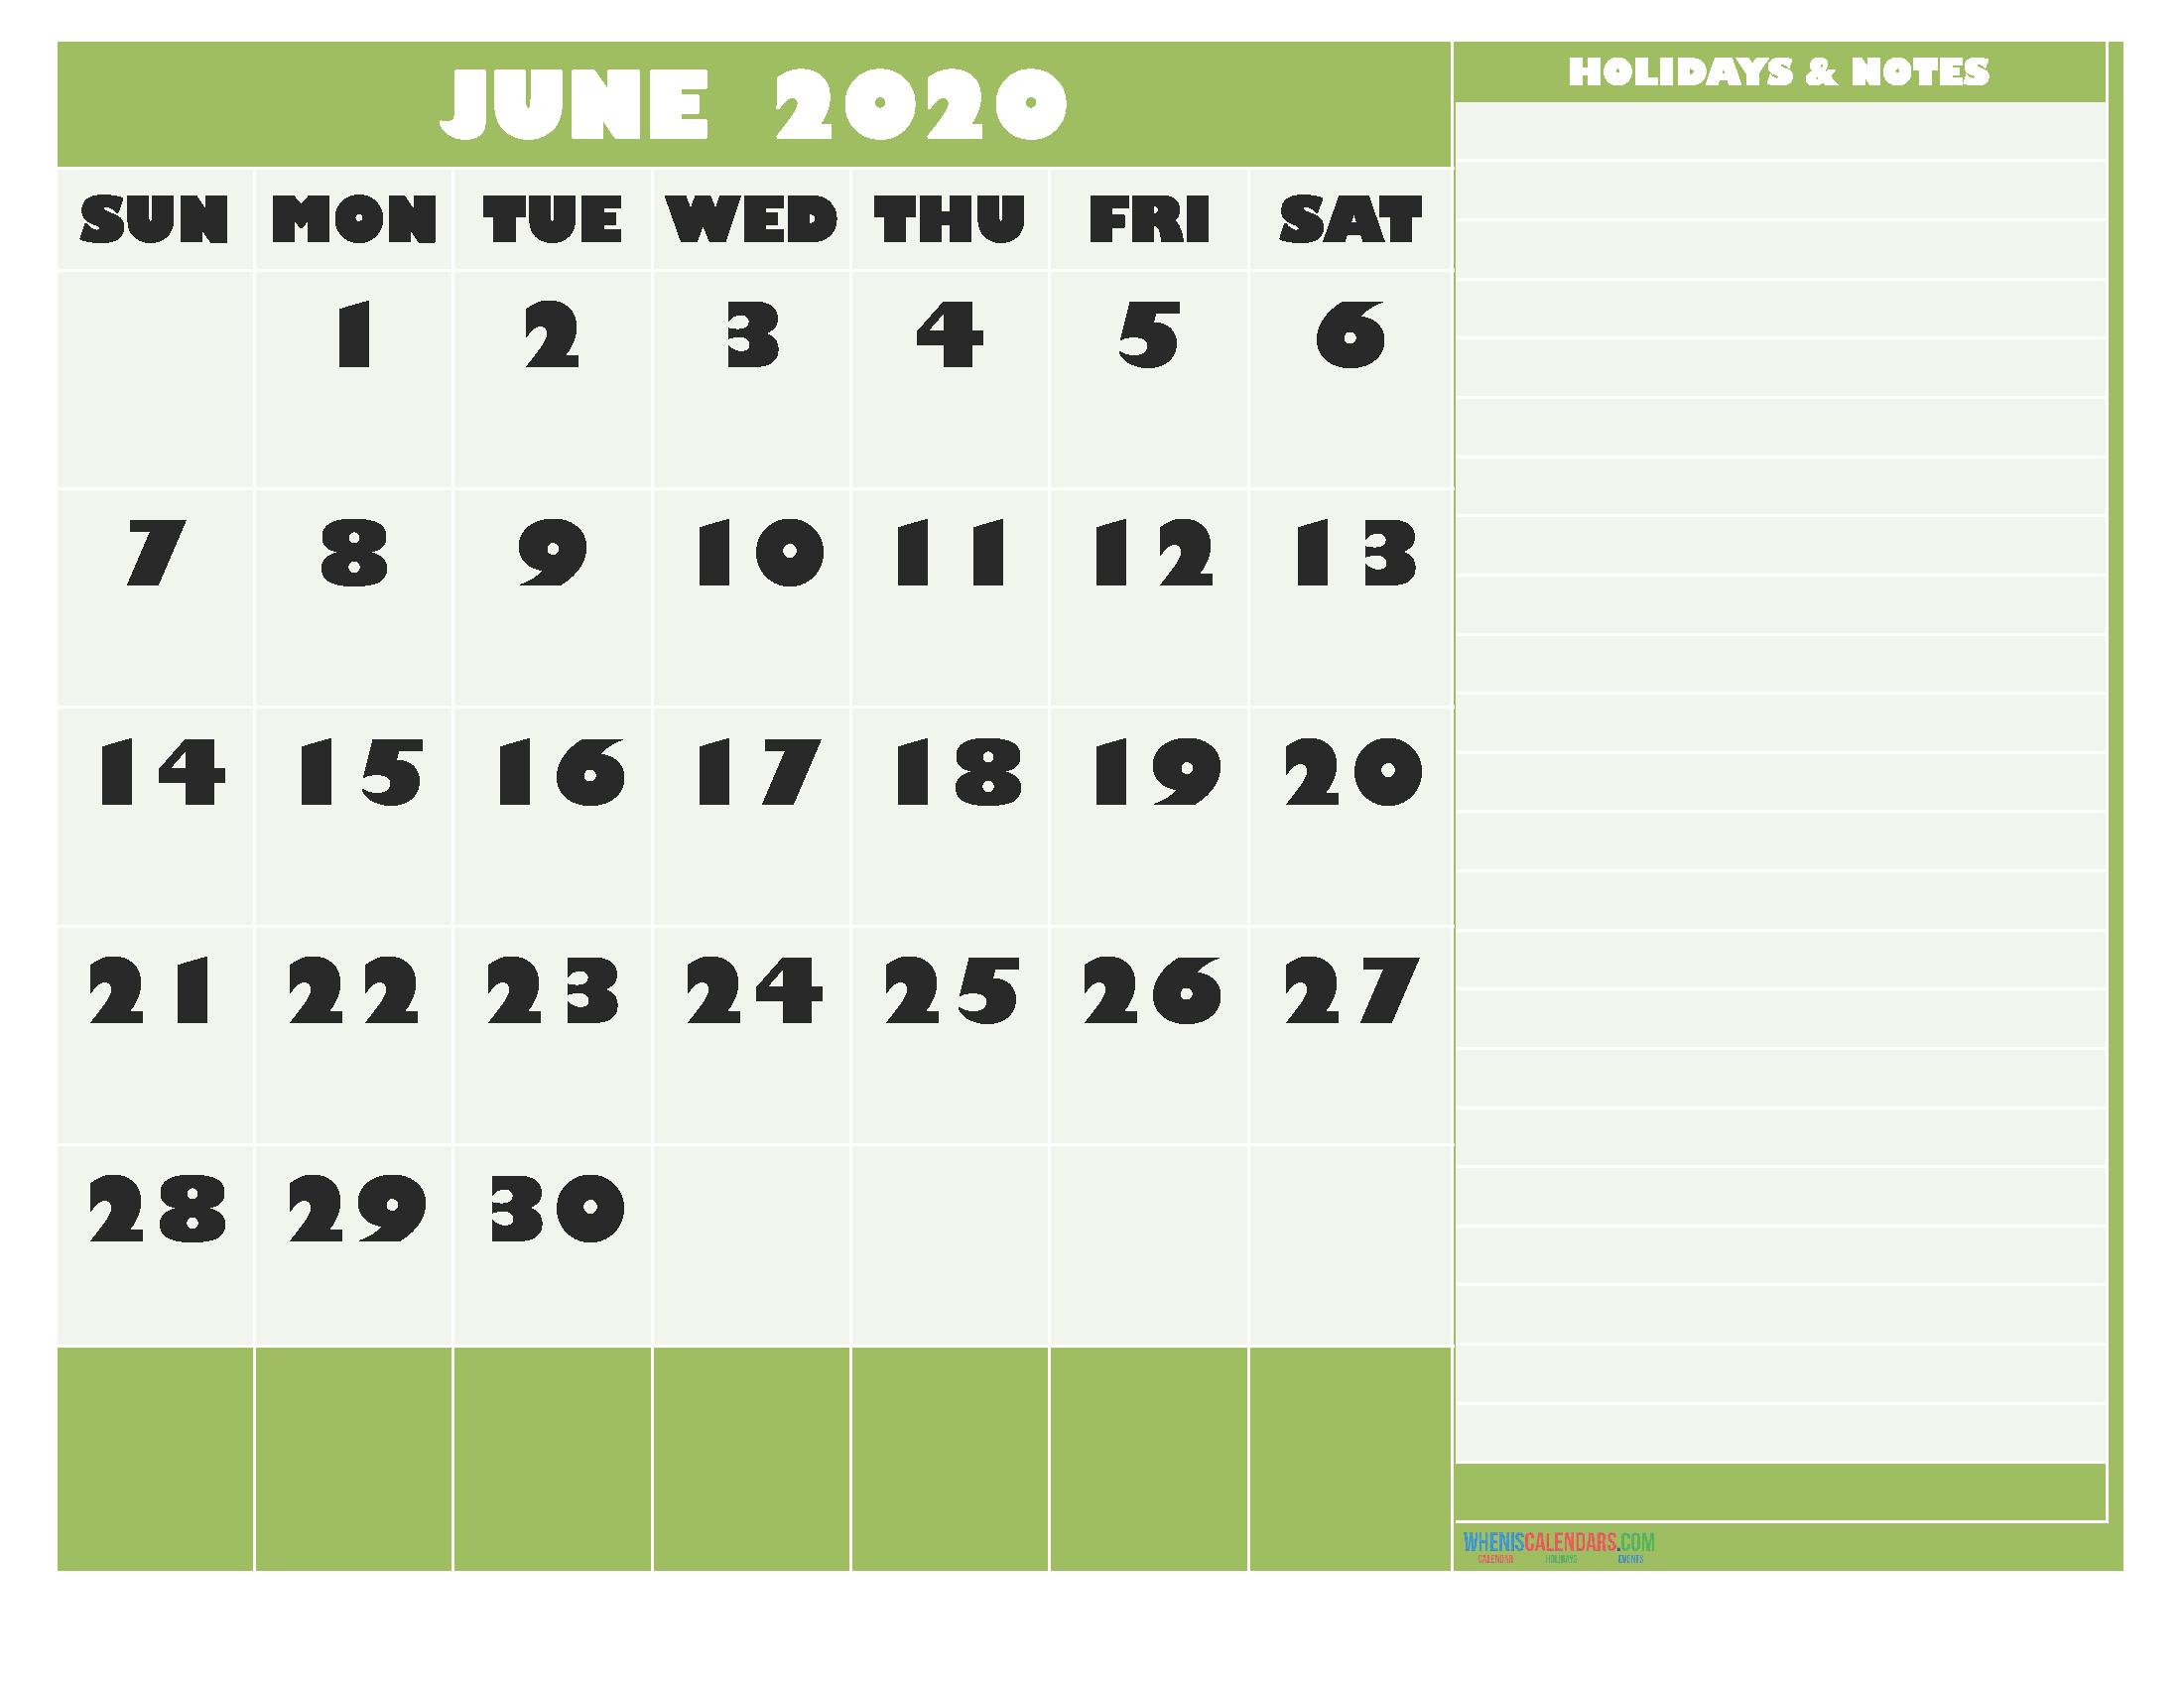 June 2020 Calendar with Holidays Free Printable